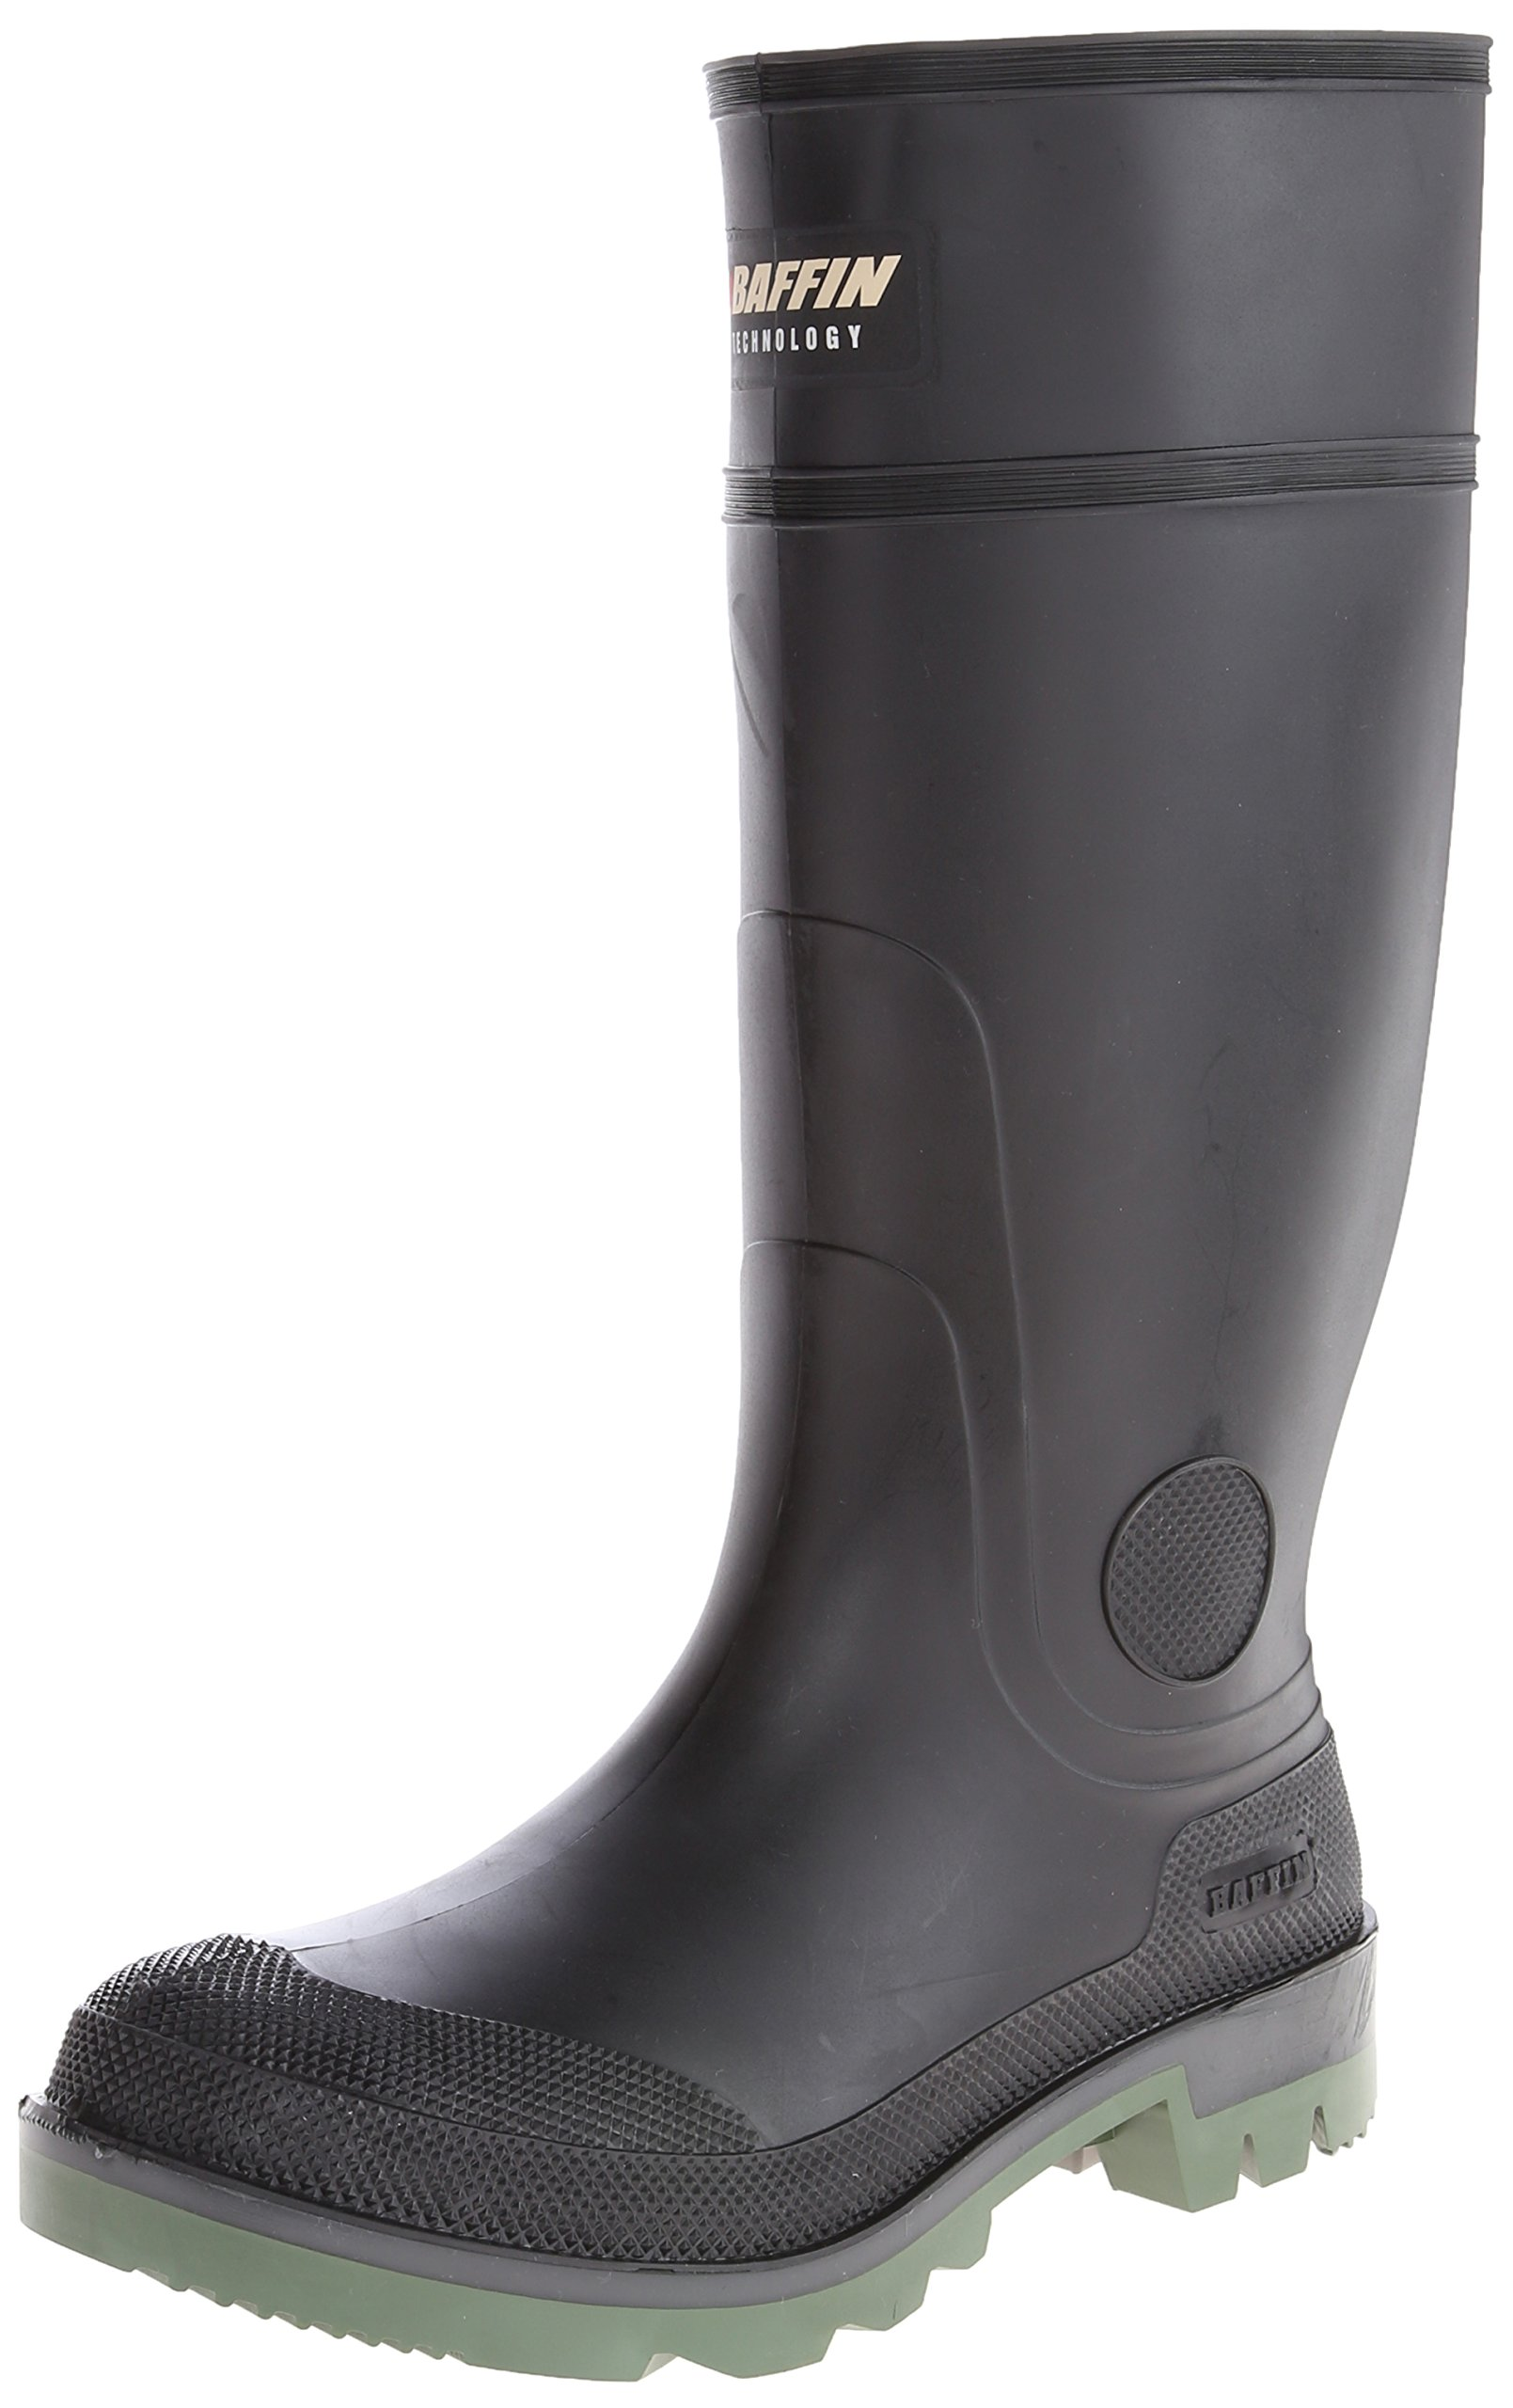 Baffin Men's Enduro PT Rain Boot,Black/Clear/Green,10 M US by Baffin